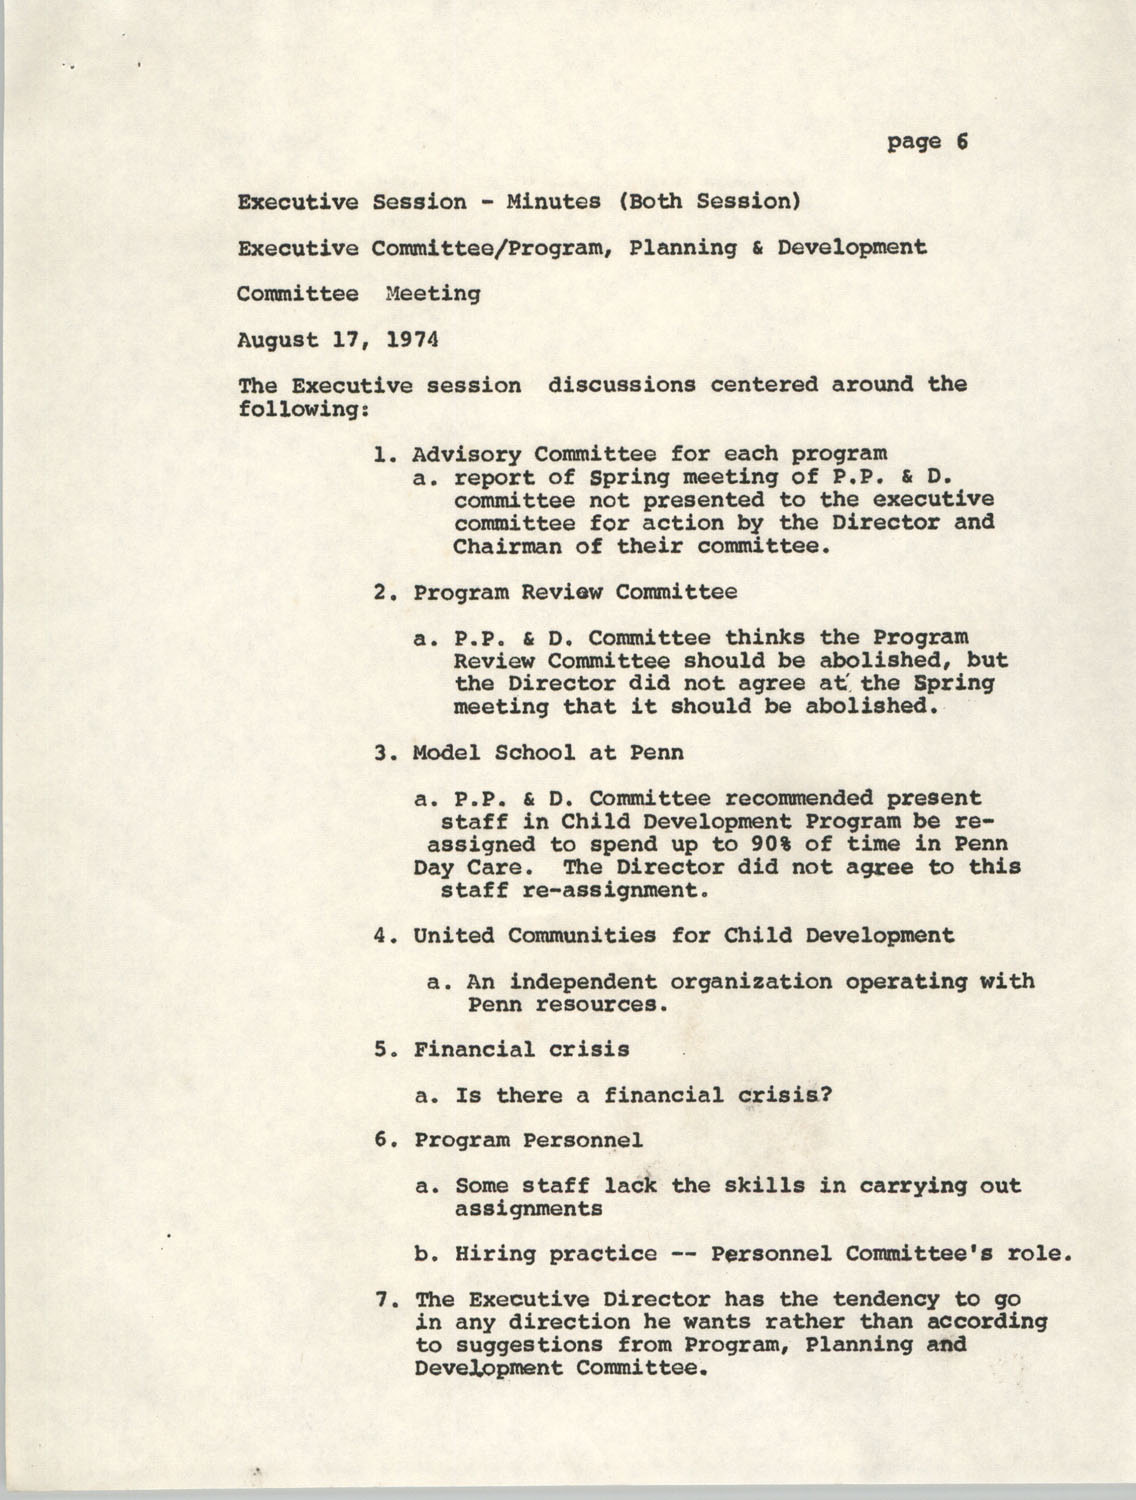 Minutes, Penn Community Services, August 17, 1974, Page 6